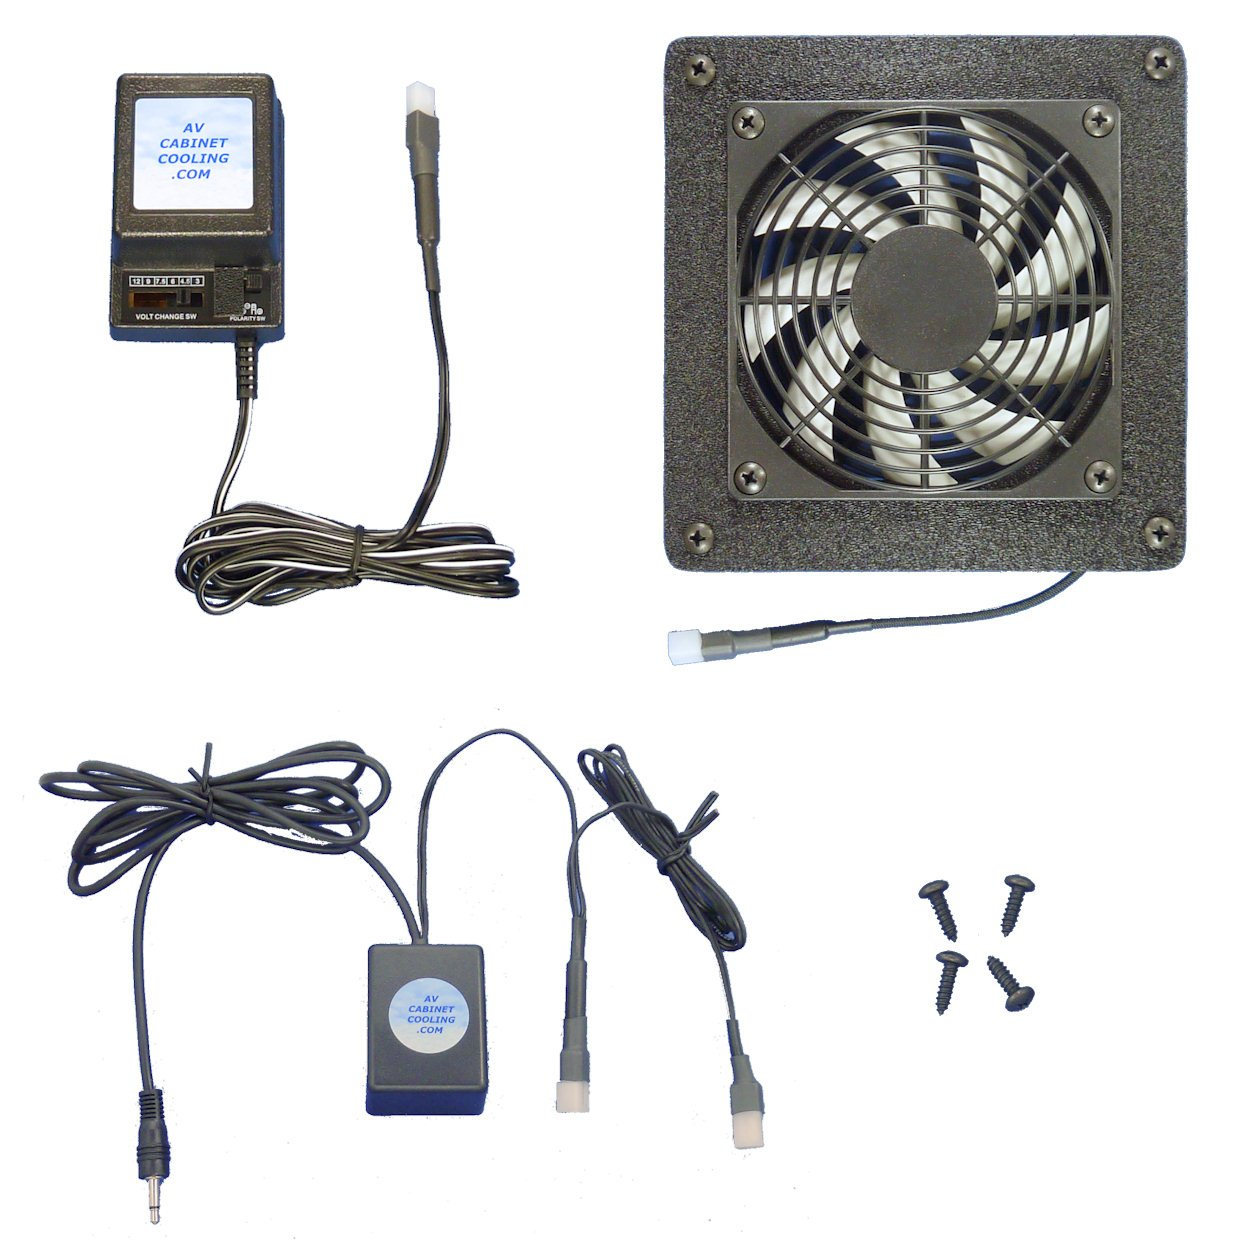 Ordinaire Get Quotations · AV Cabinet 12 Volt Trigger Controlled Cooling Fan System,  With Multi Speed Fan